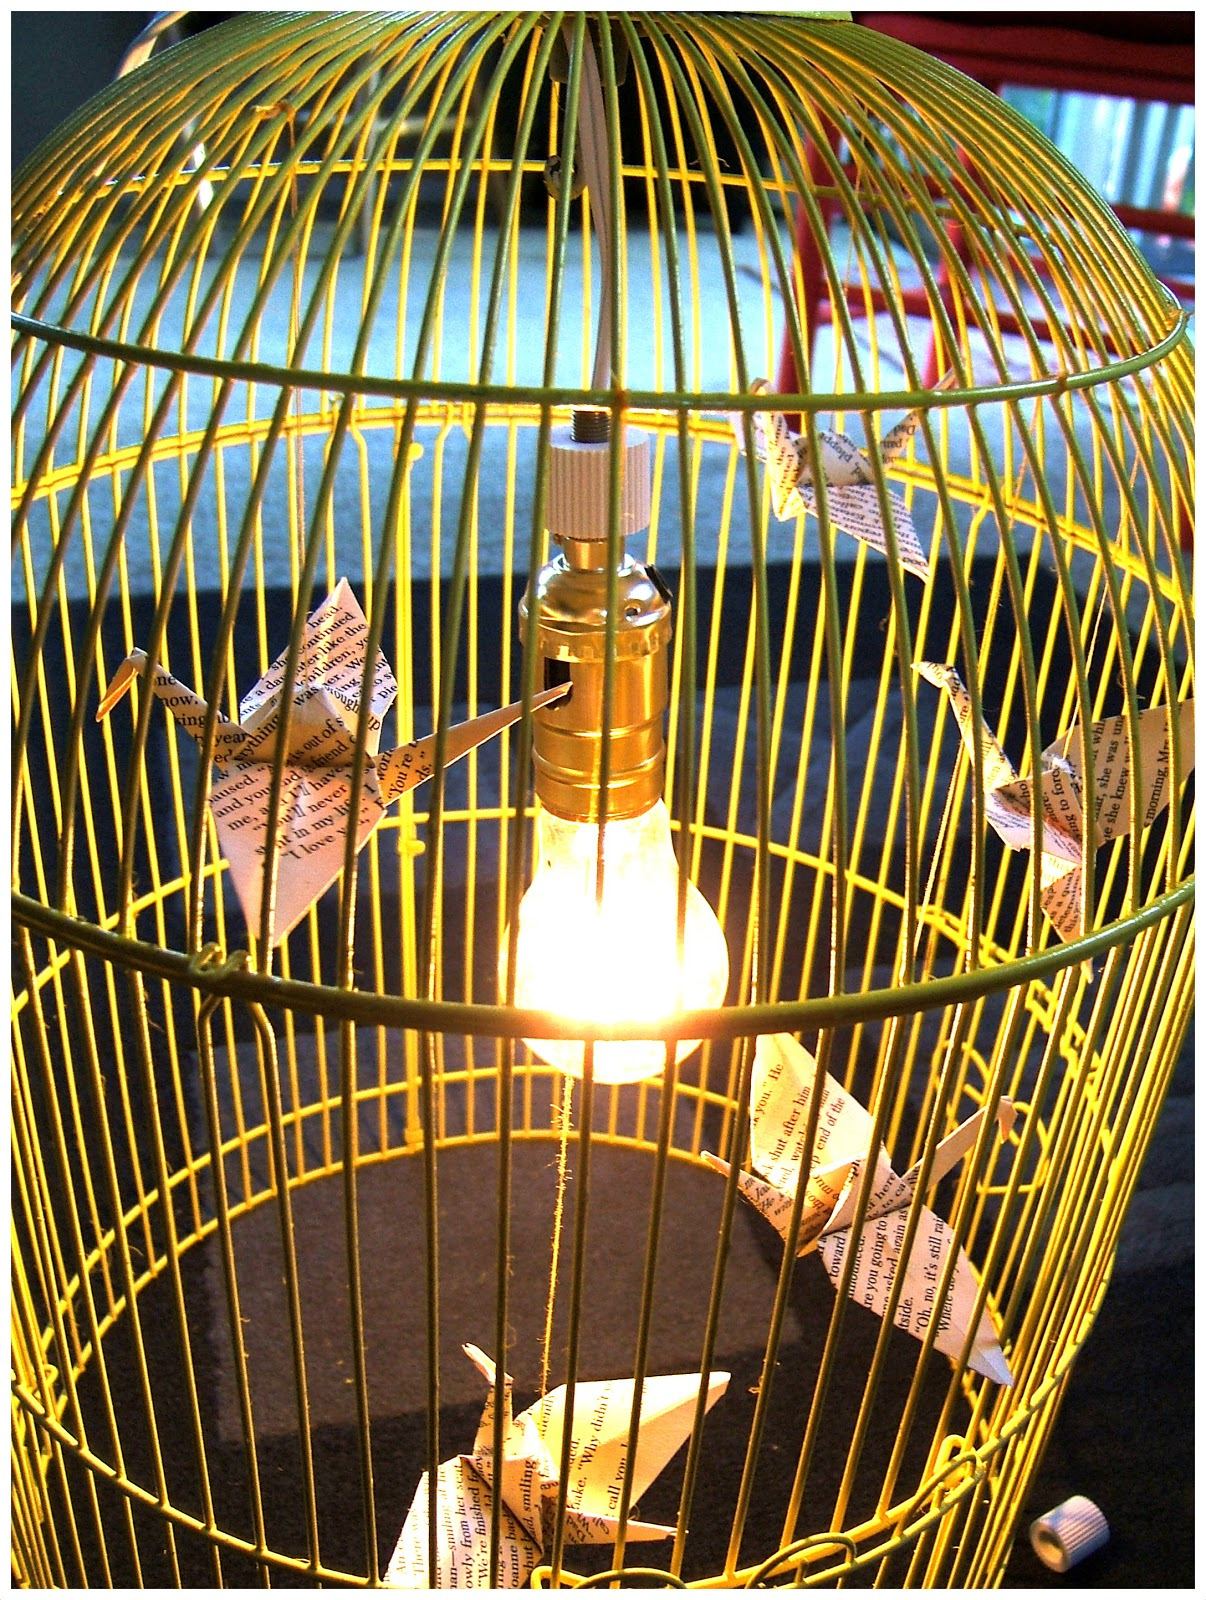 Nine red how to bird cage chandelier you do not want to have birds falling out over time i put mine in random spots sometimes putting two cranes at different heights on one string arubaitofo Gallery